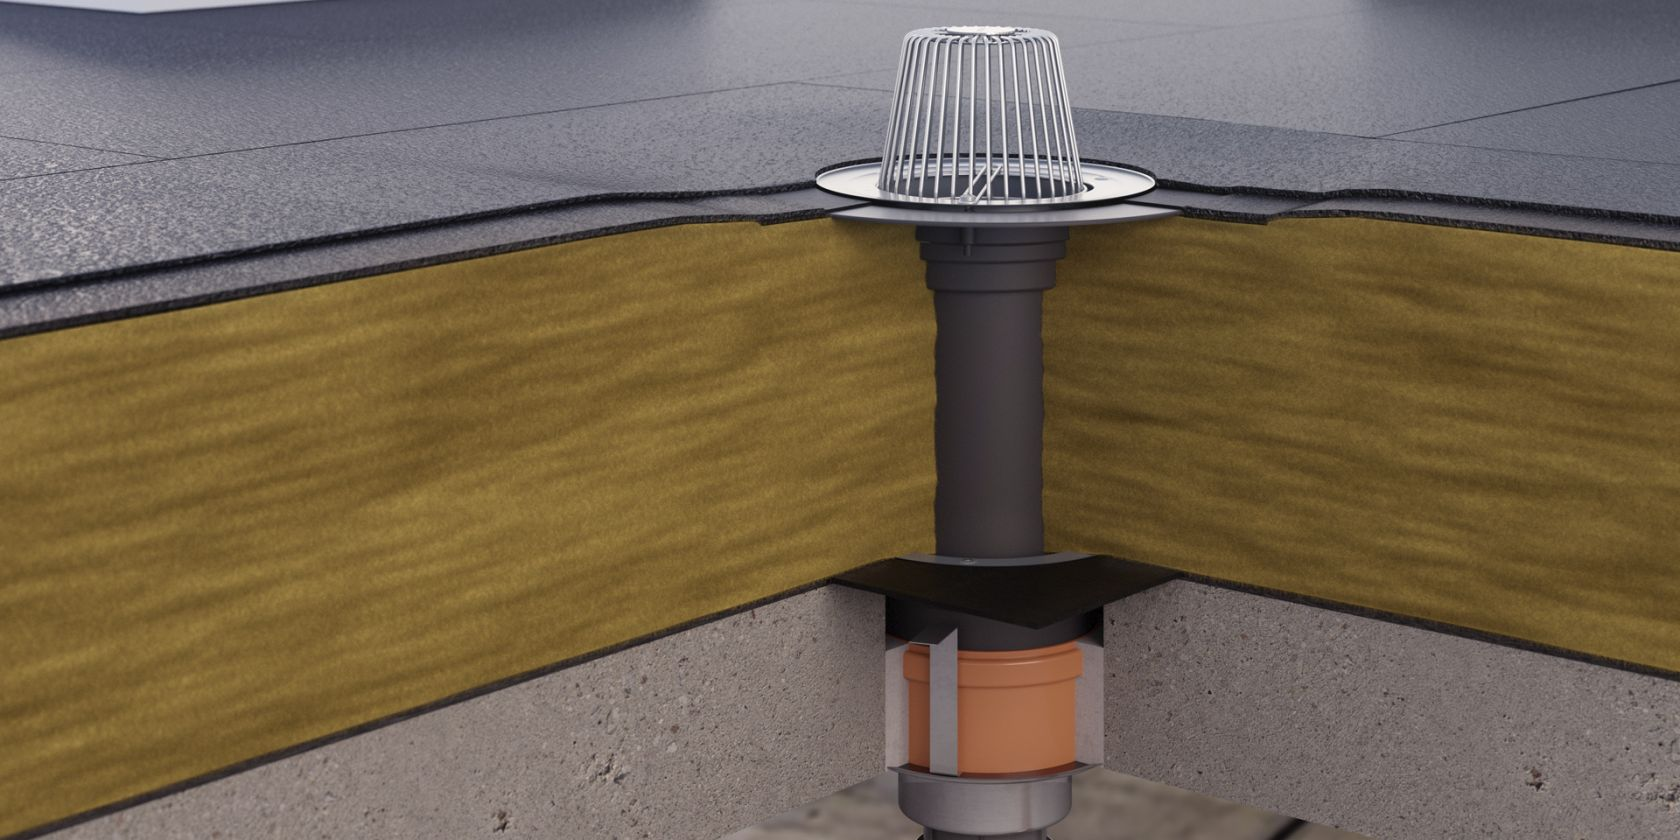 Fire insulation for roof drains in concrete surfaces